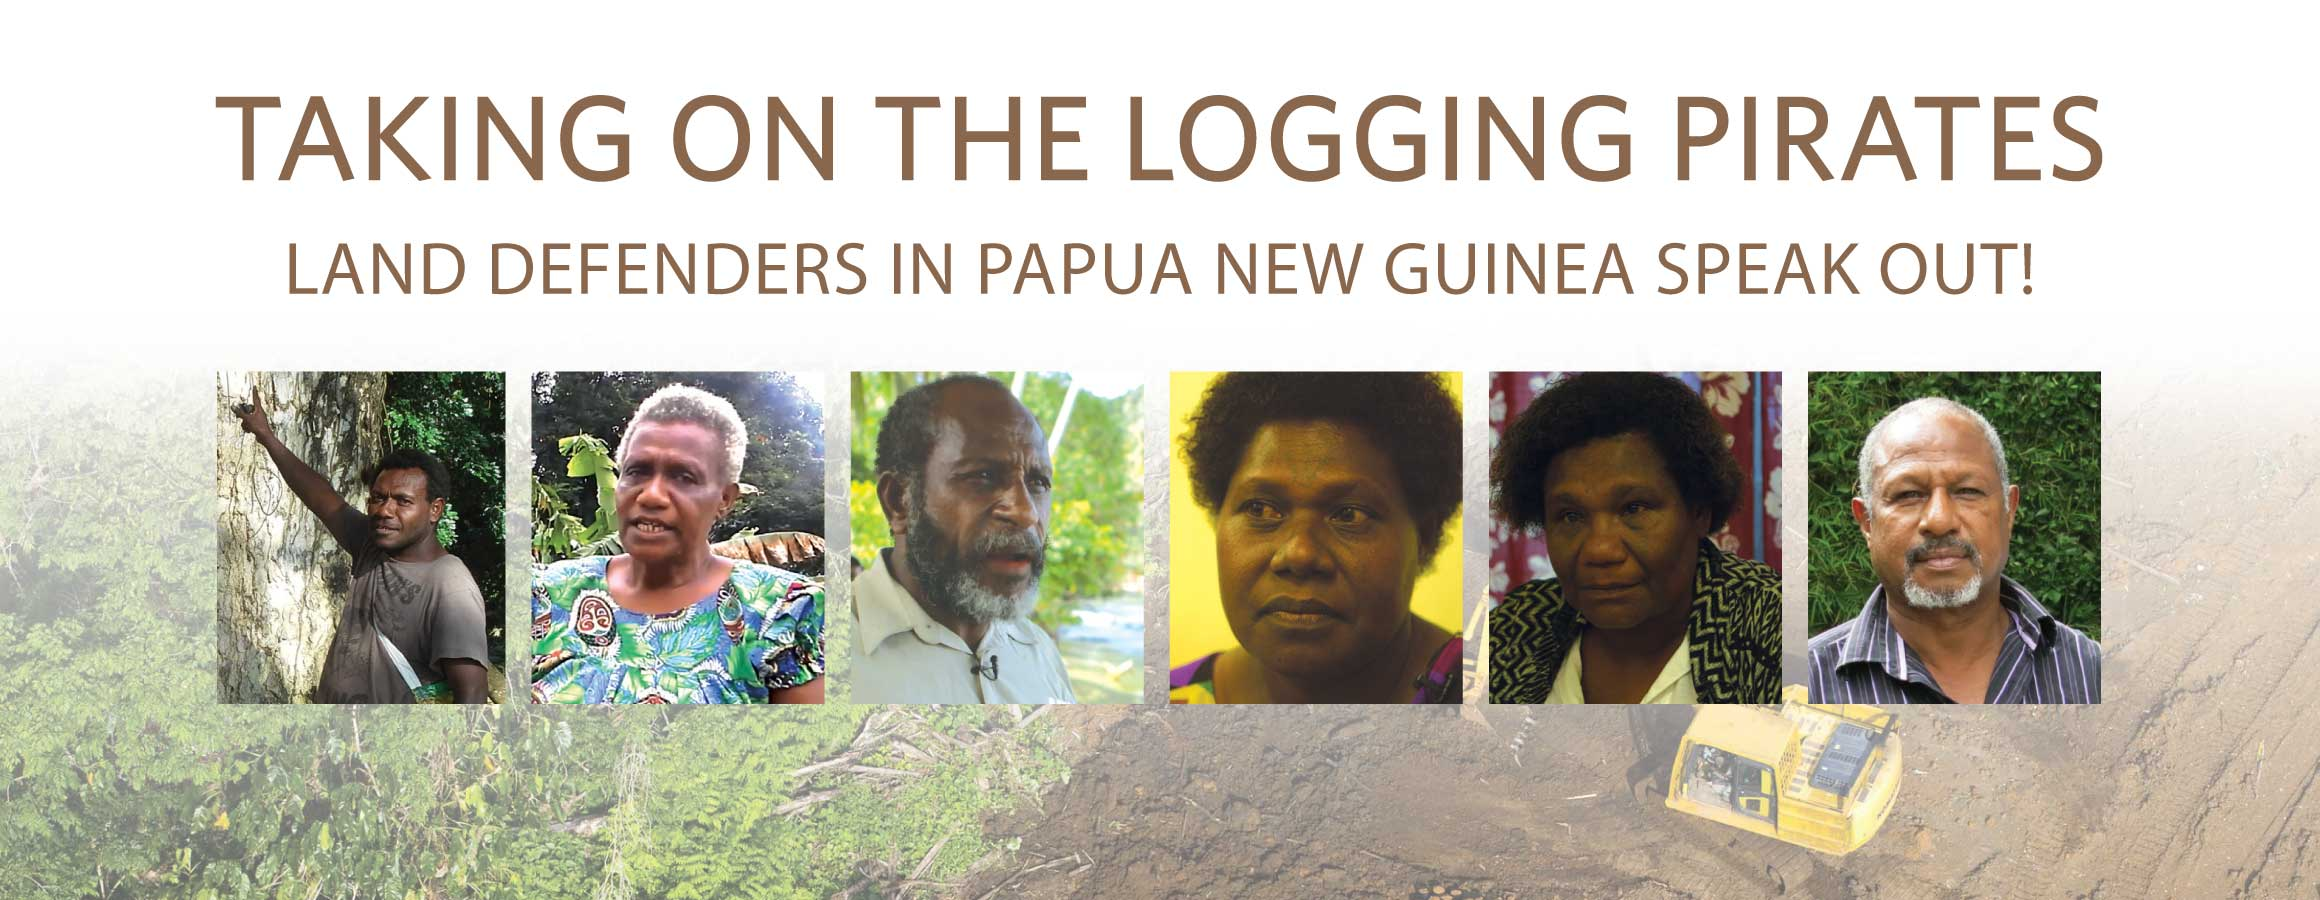 Taking on the Logging Pirates: Papua New Guineans Speak Out Against Illegal Logging, Palm Oil, and Corruption